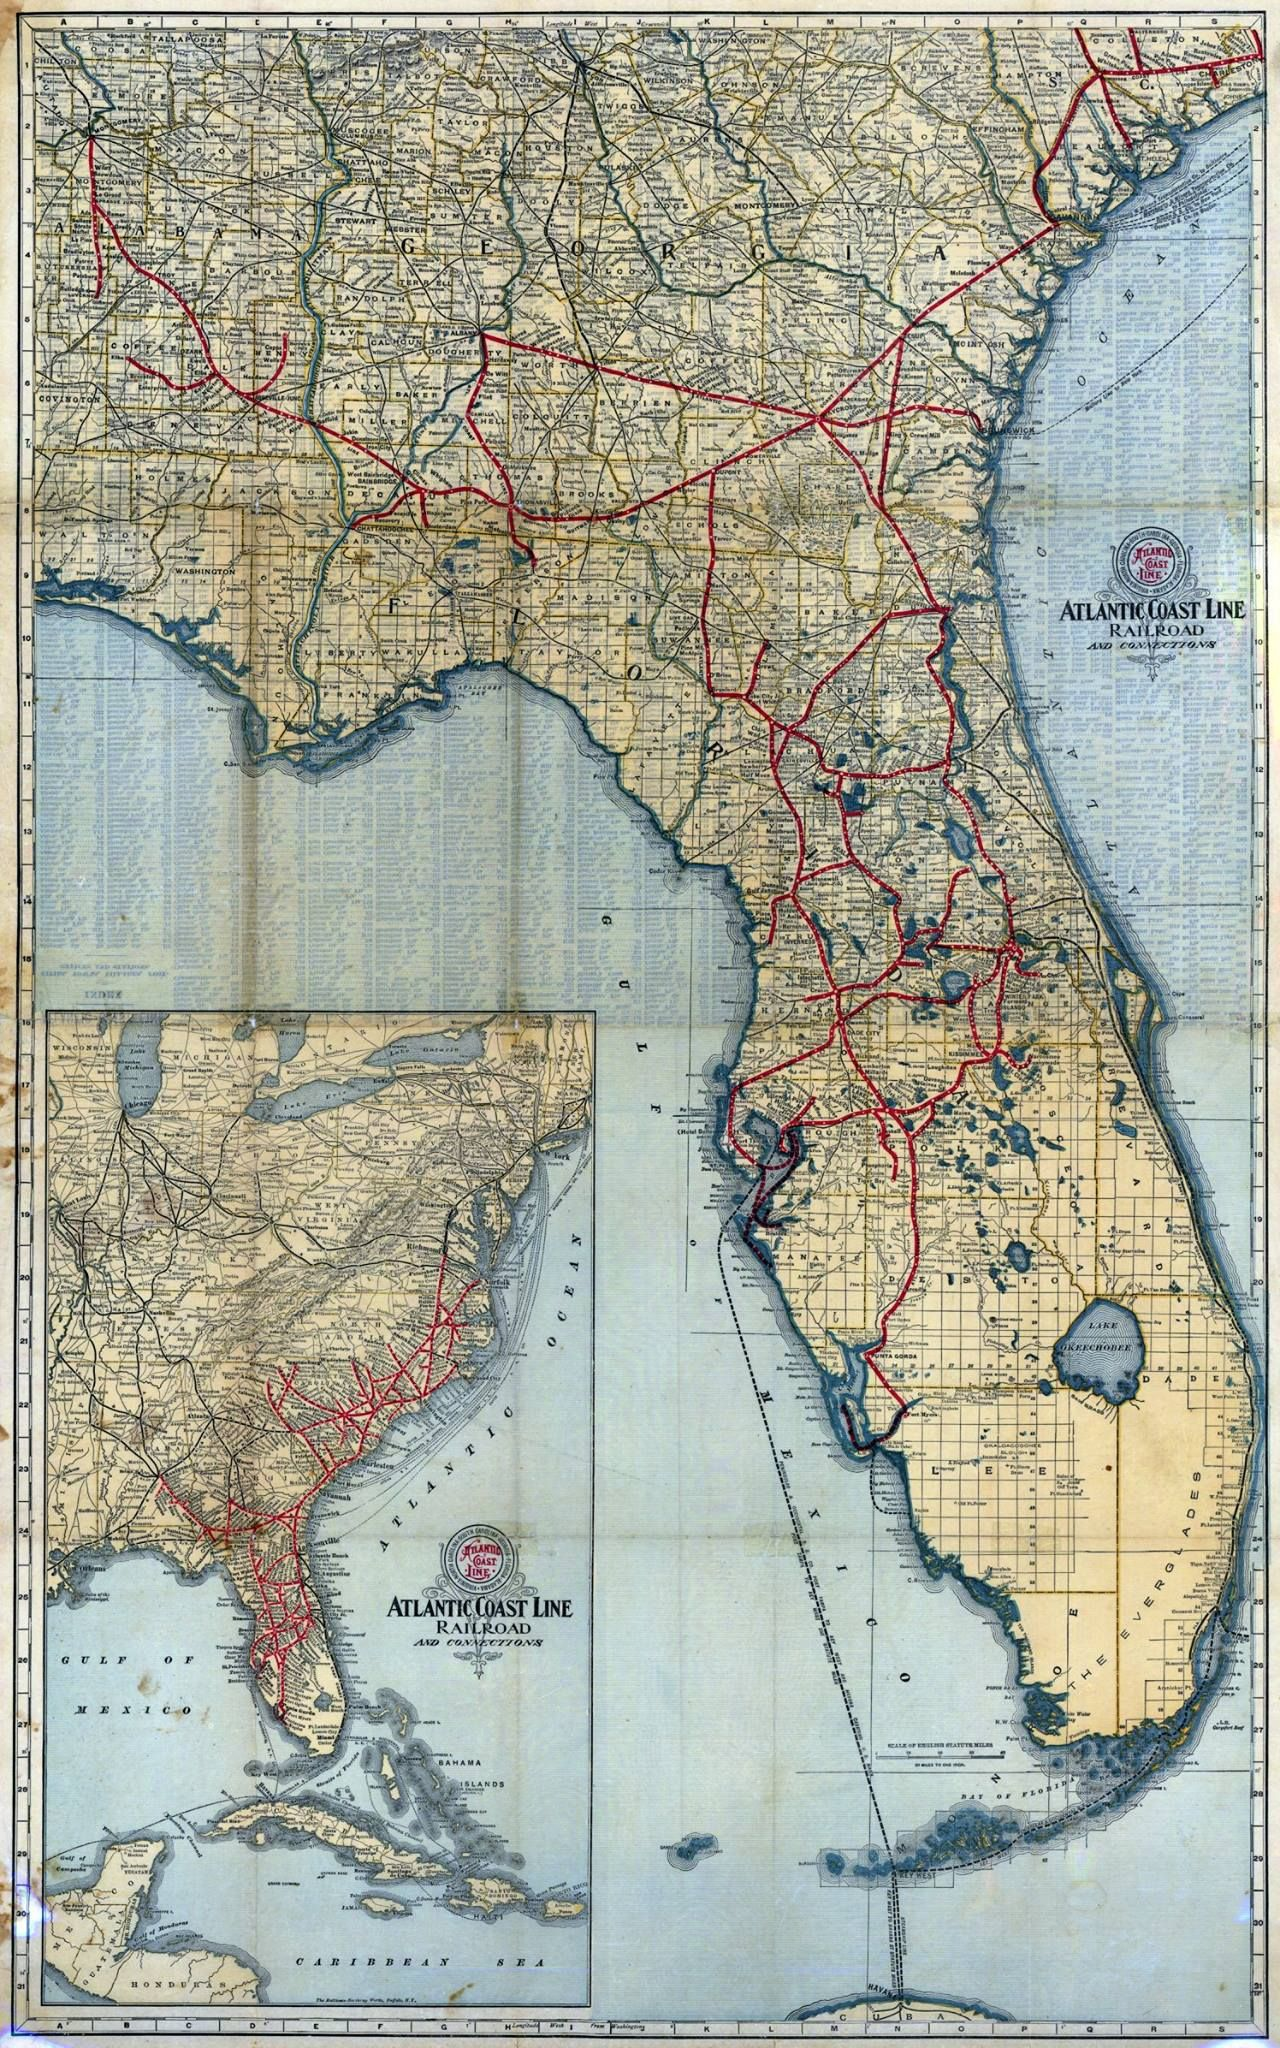 Atlantic Coast Florida Map.Atlantic Coast Line Railroad Map 1902 Hi Res In 2019 Old